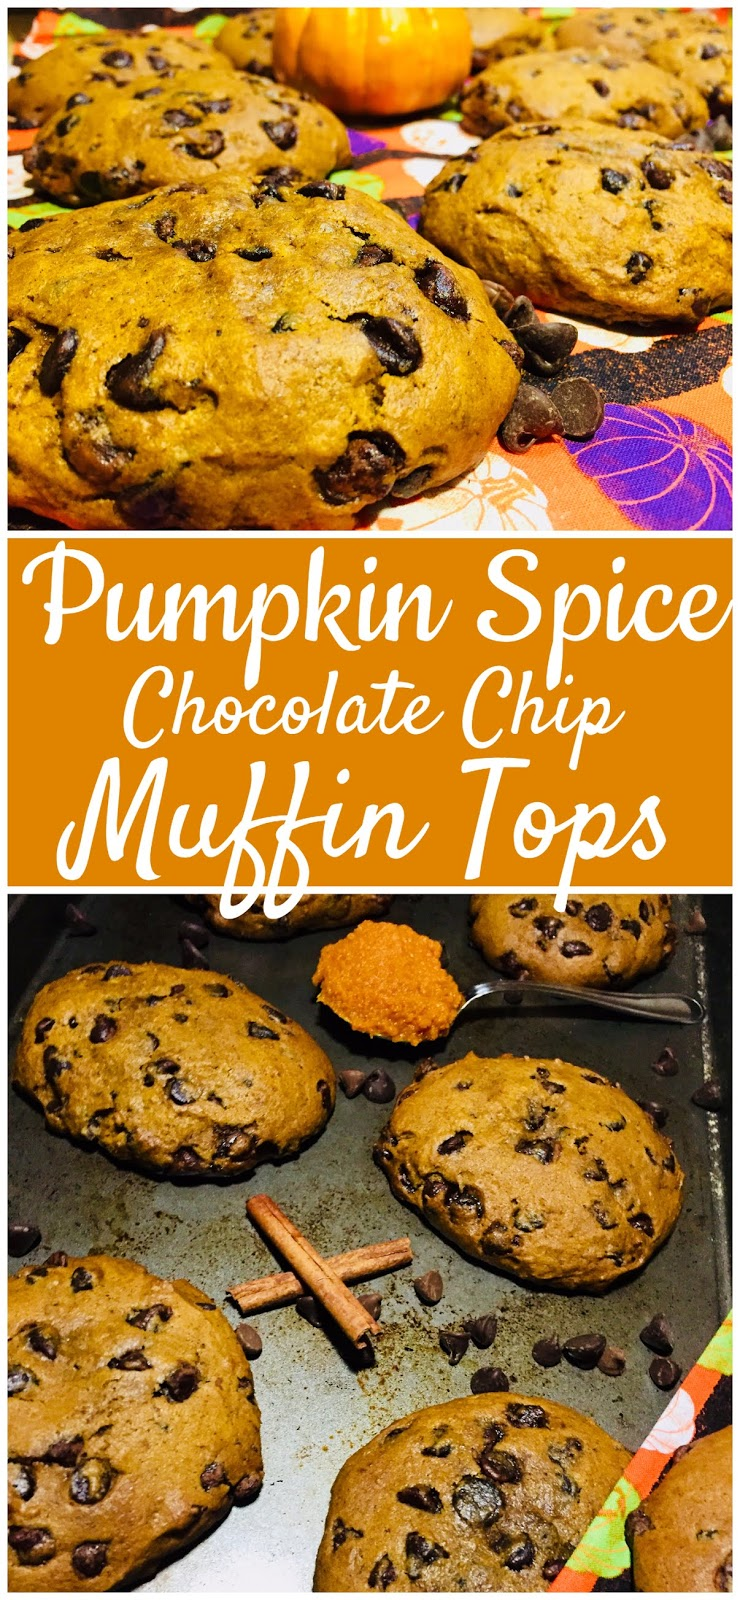 Pumpkin Spice Chocolate Chip Muffin Tops